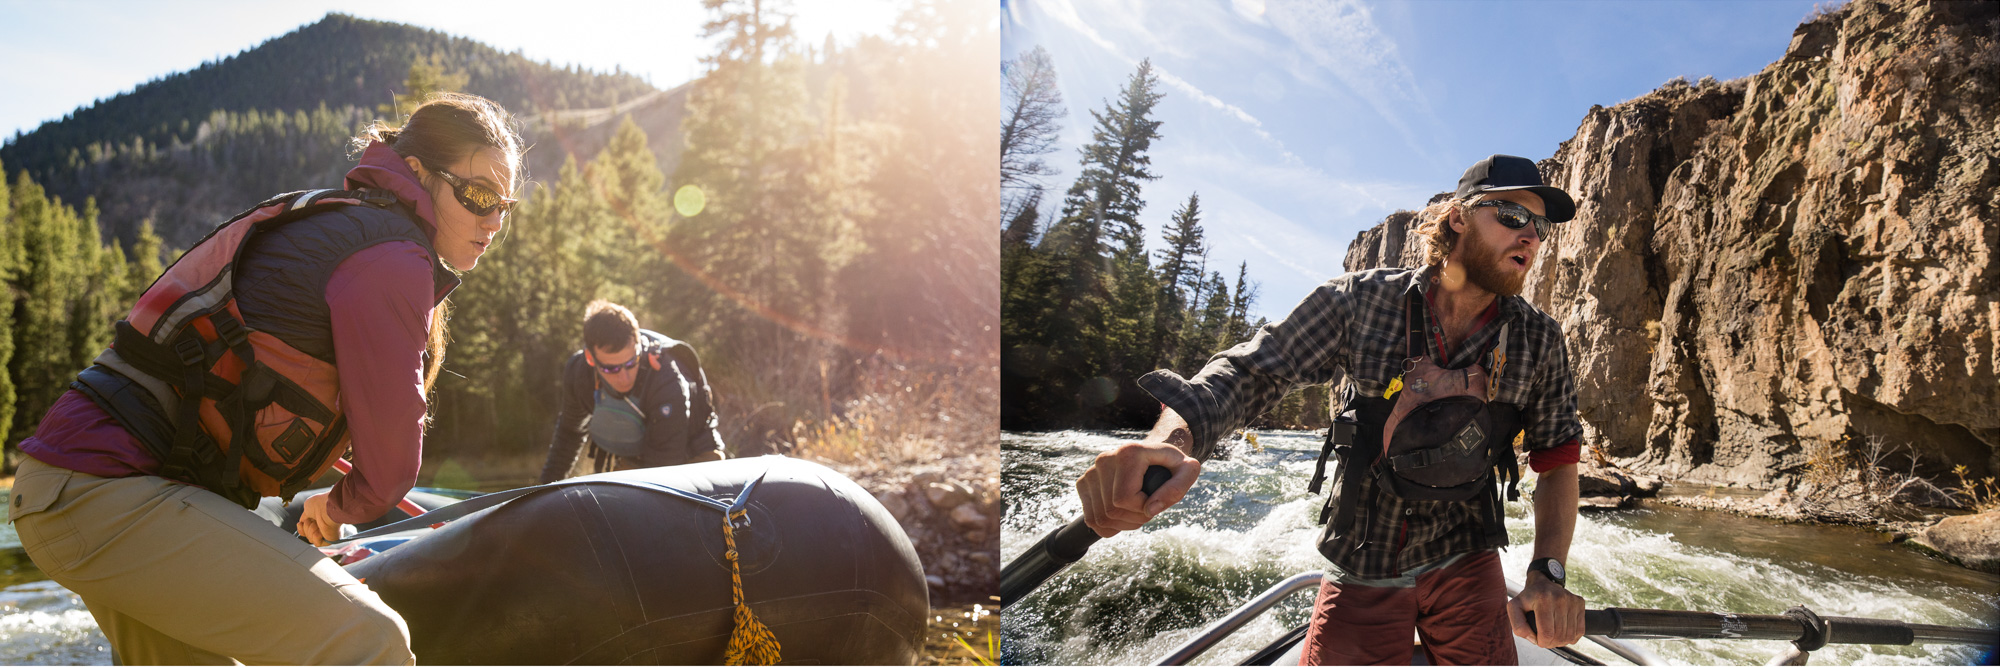 fall-spring-active-lifestyle-whitewater-rafting-male-female